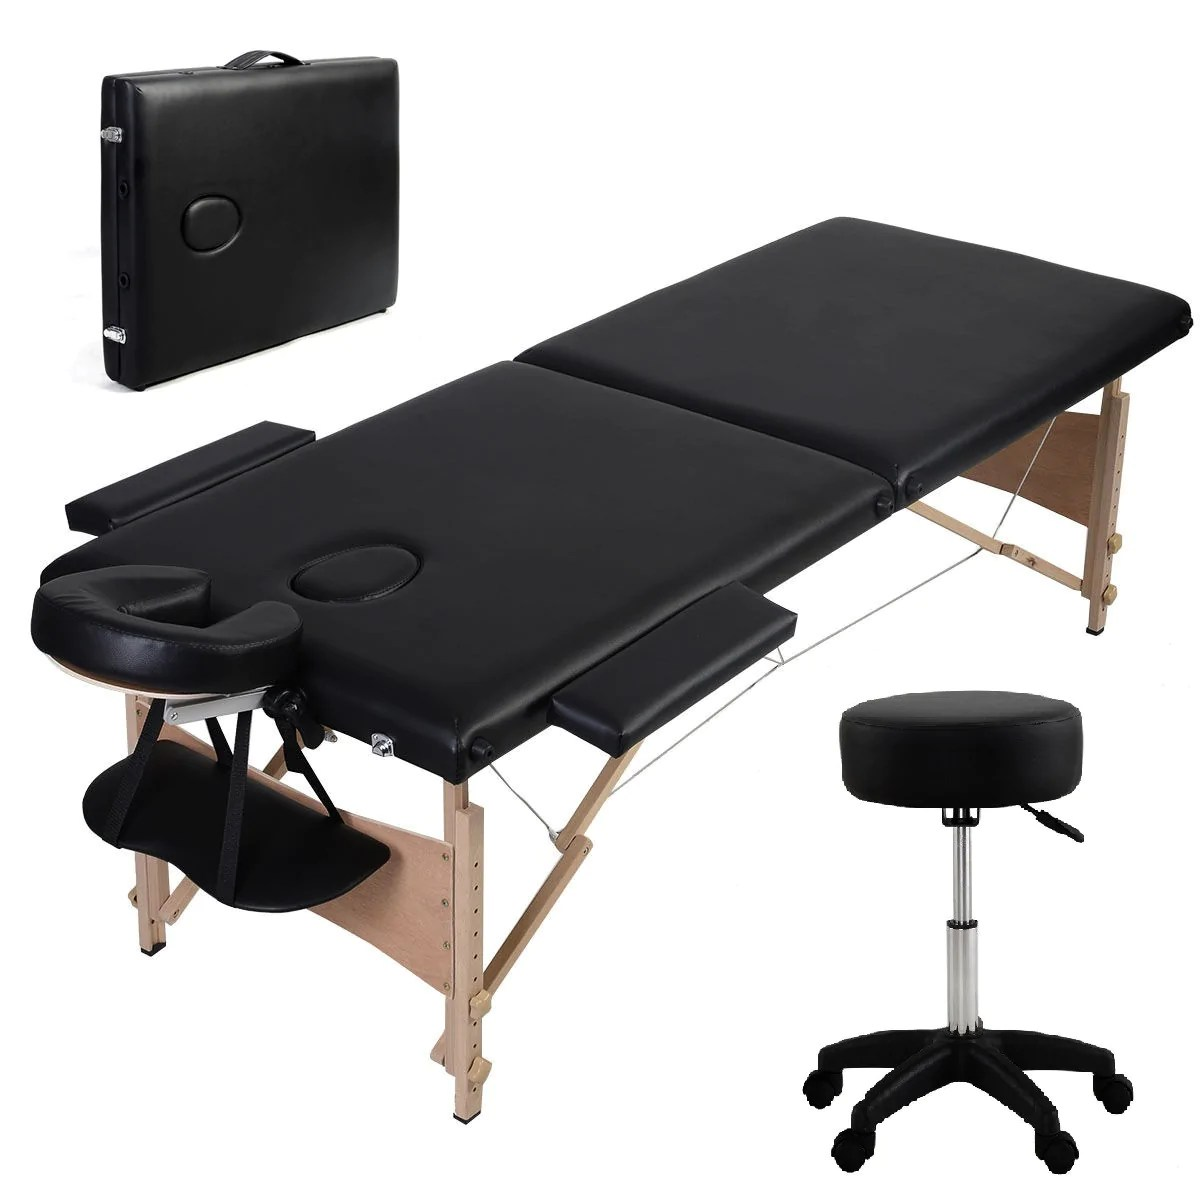 Portable Stool The Starter Portable Massage Table With Rolling Stool